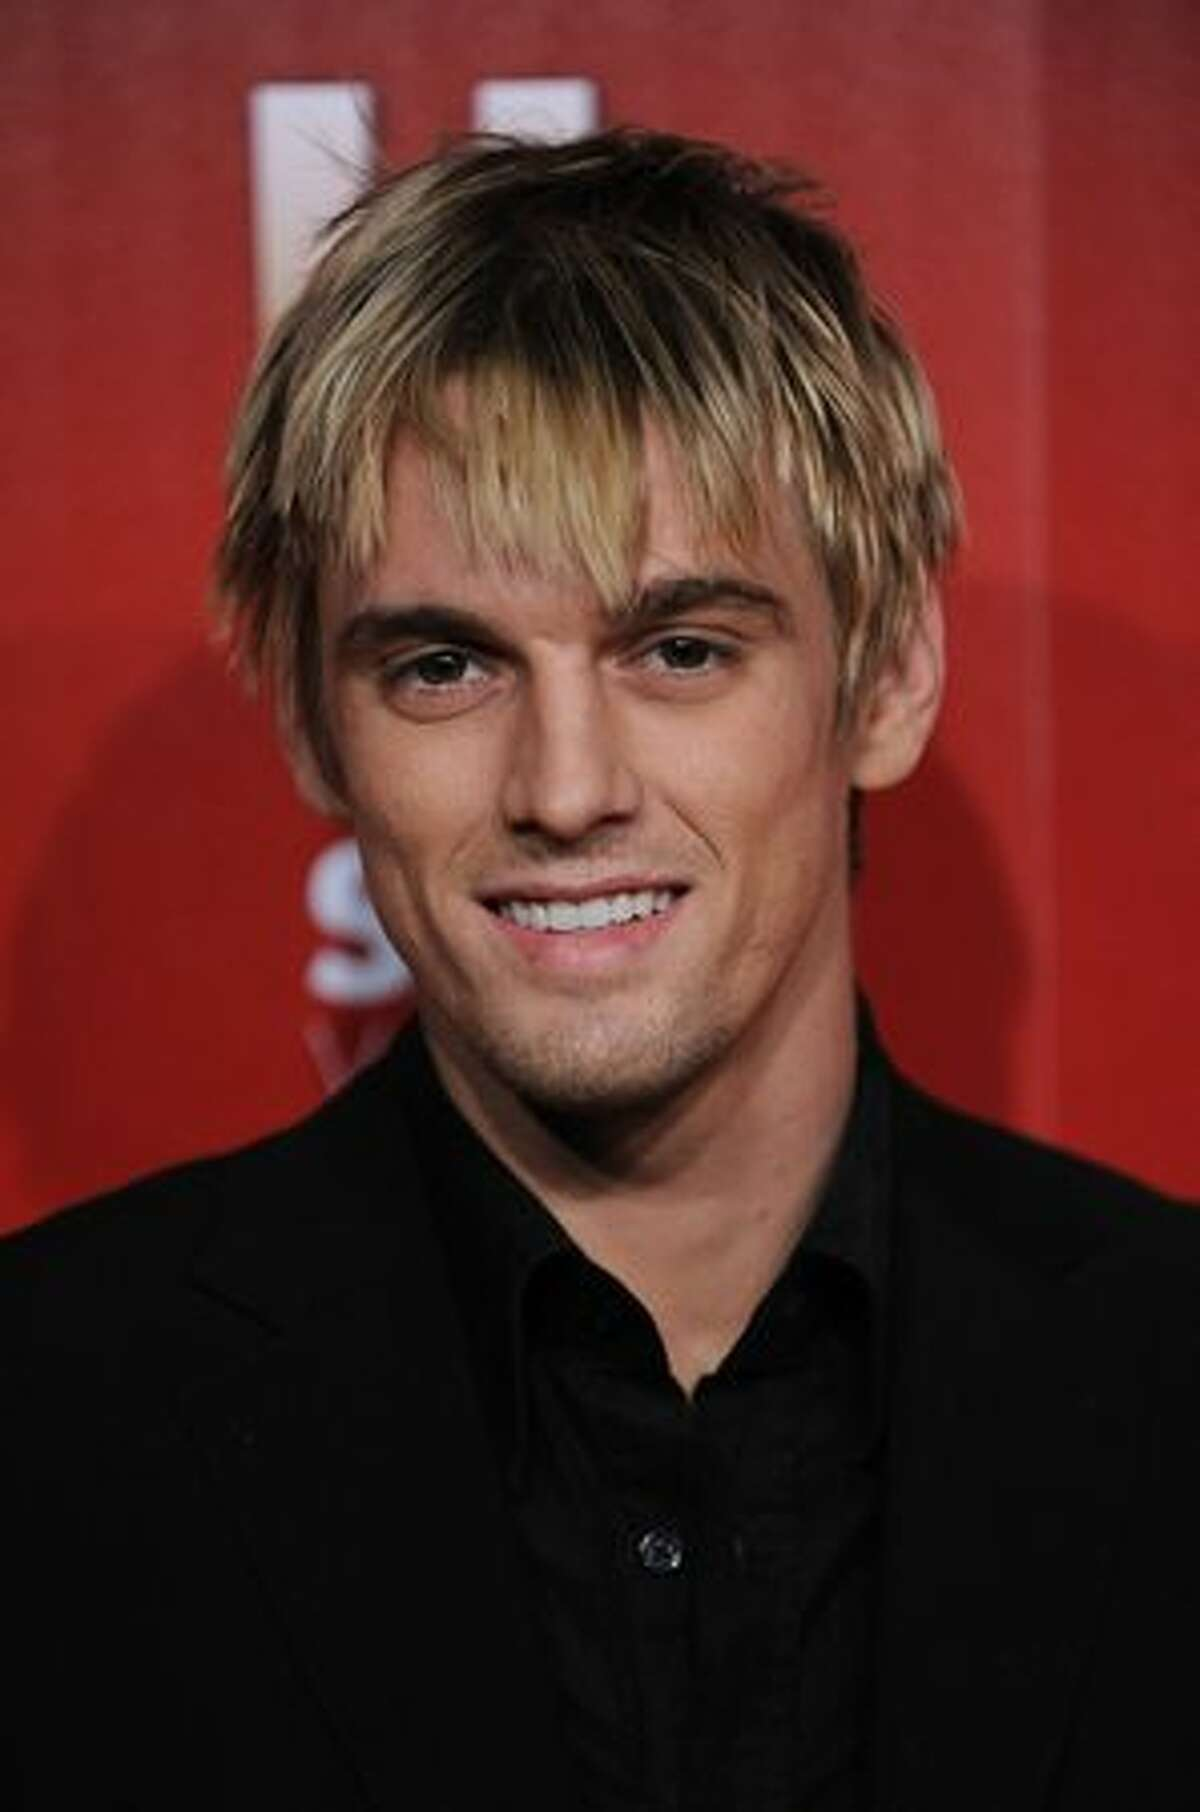 Singer Aaron Carter arrives at the Us Weekly Hot Hollywood Event at Voyeur in Los Angeles, California.